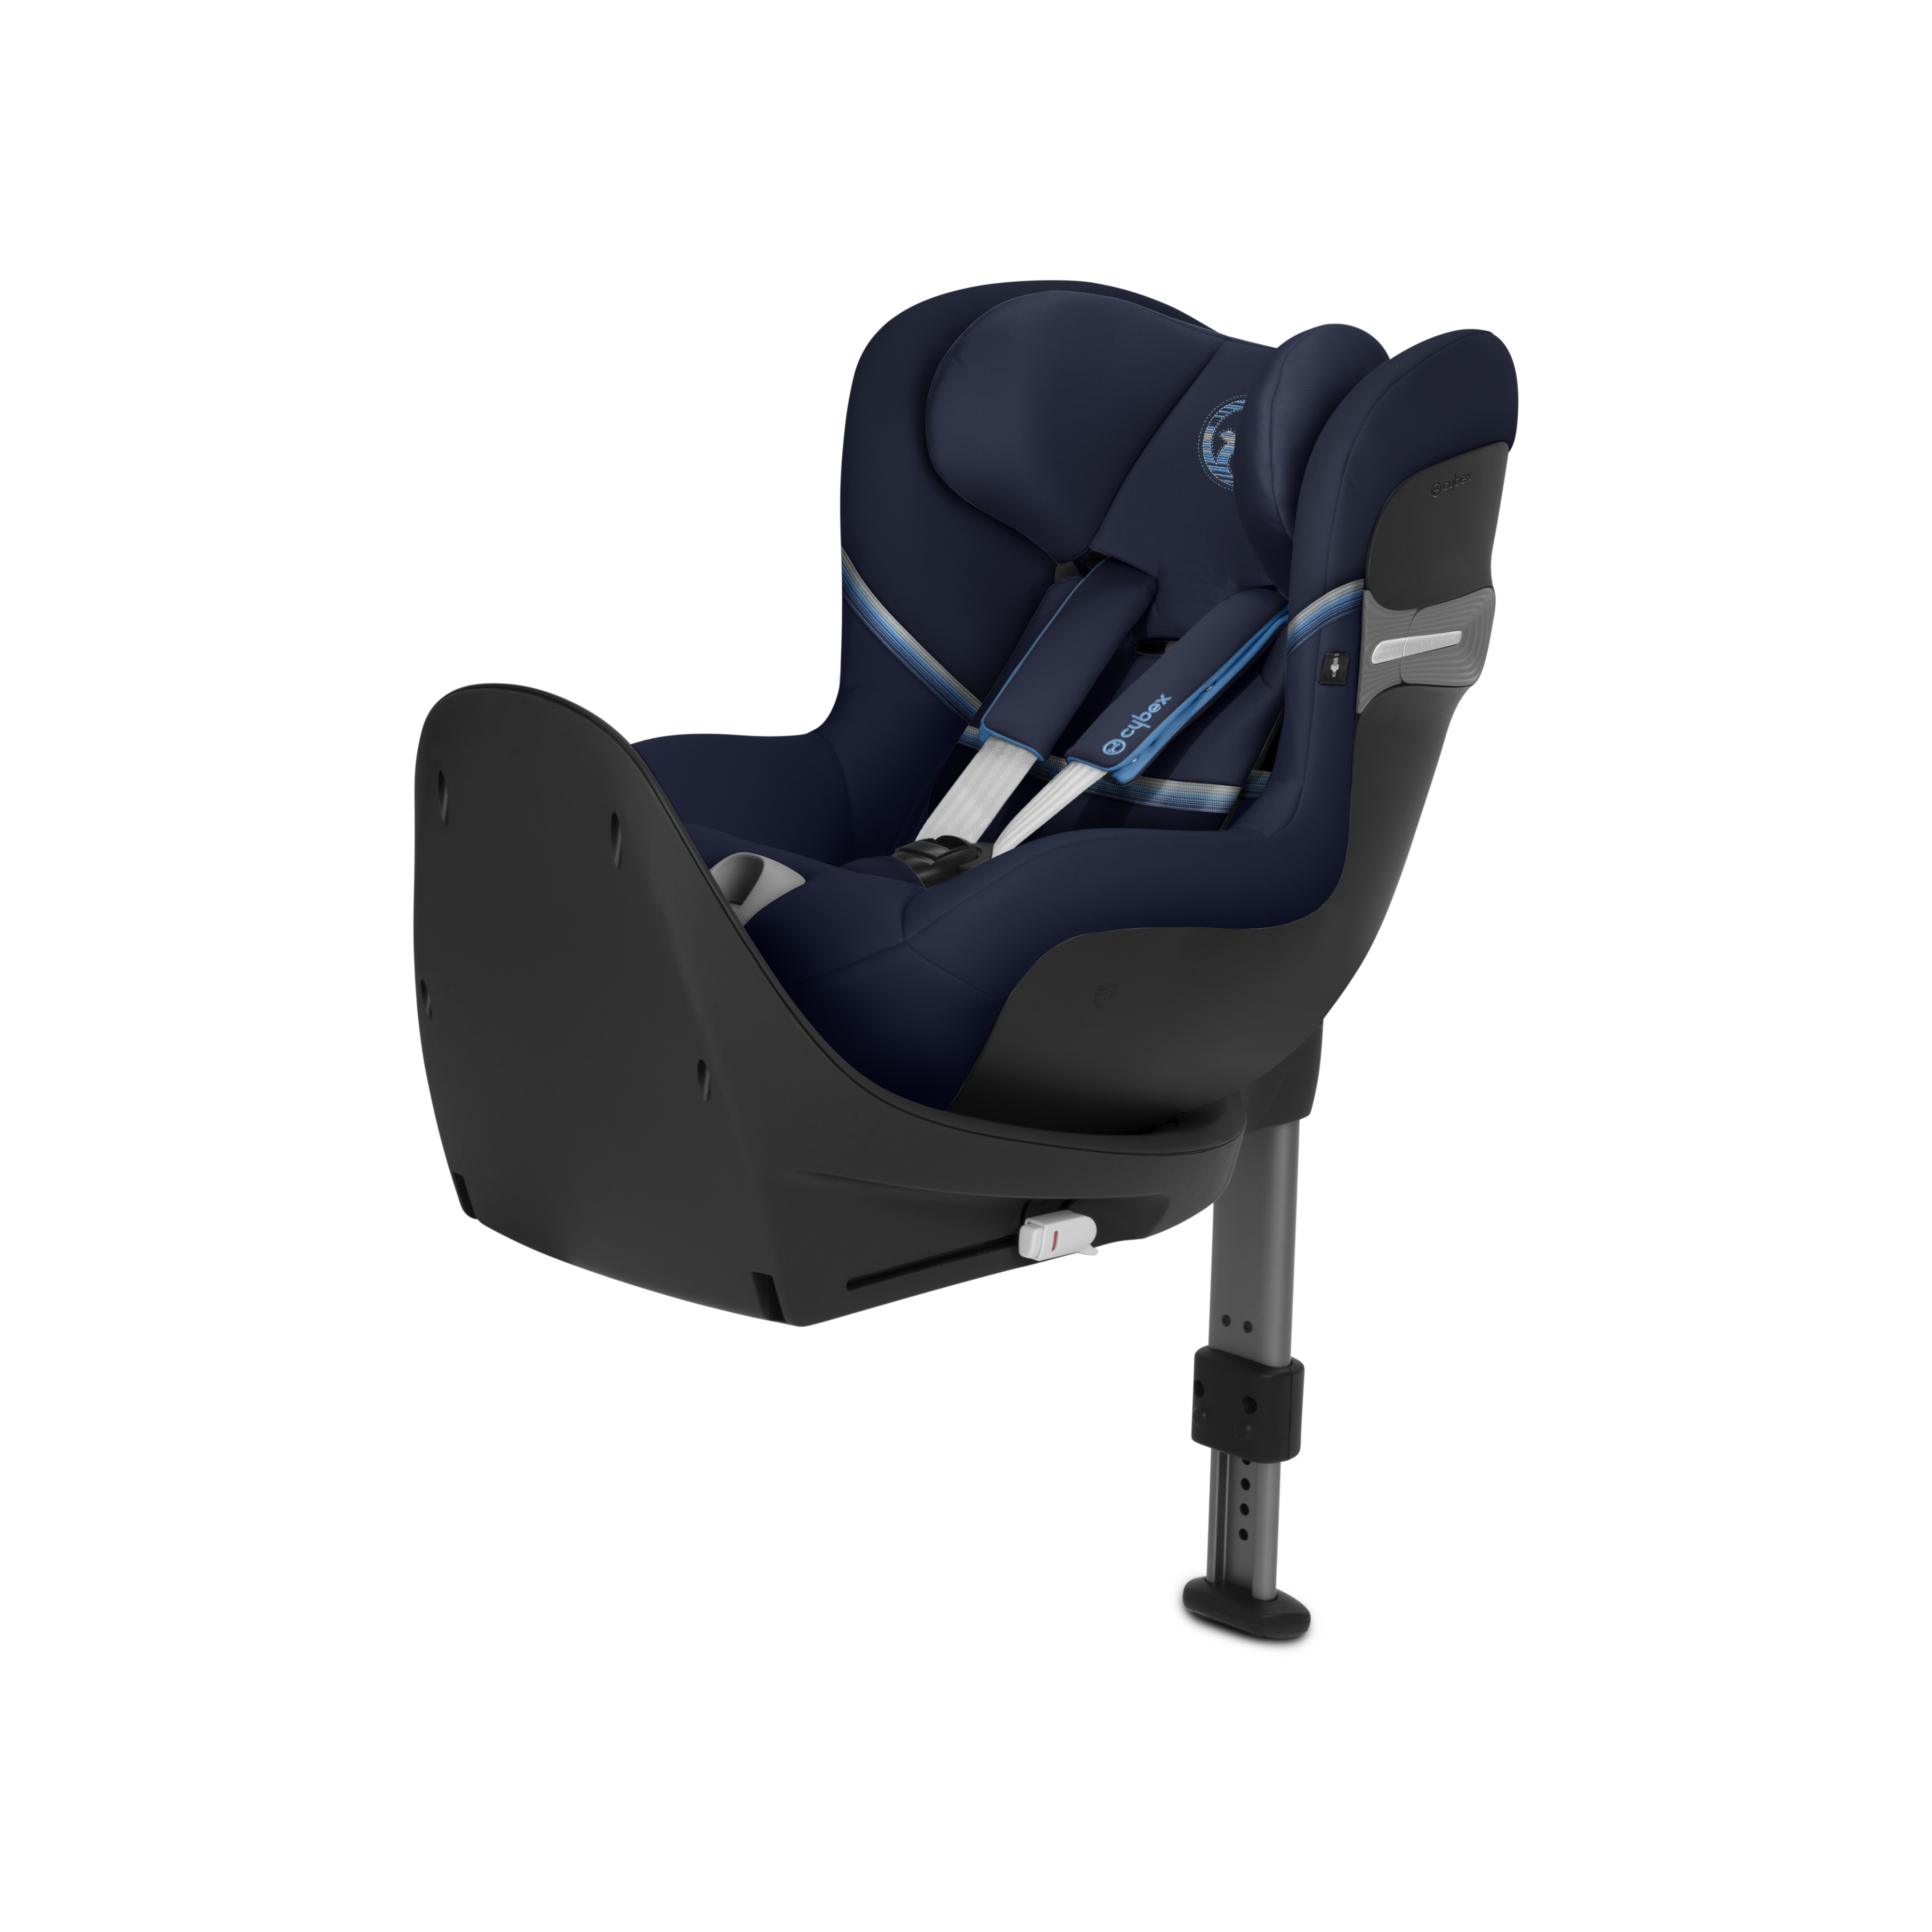 The Sirona S I Size Car Seat For Approx 0 4 Year Olds